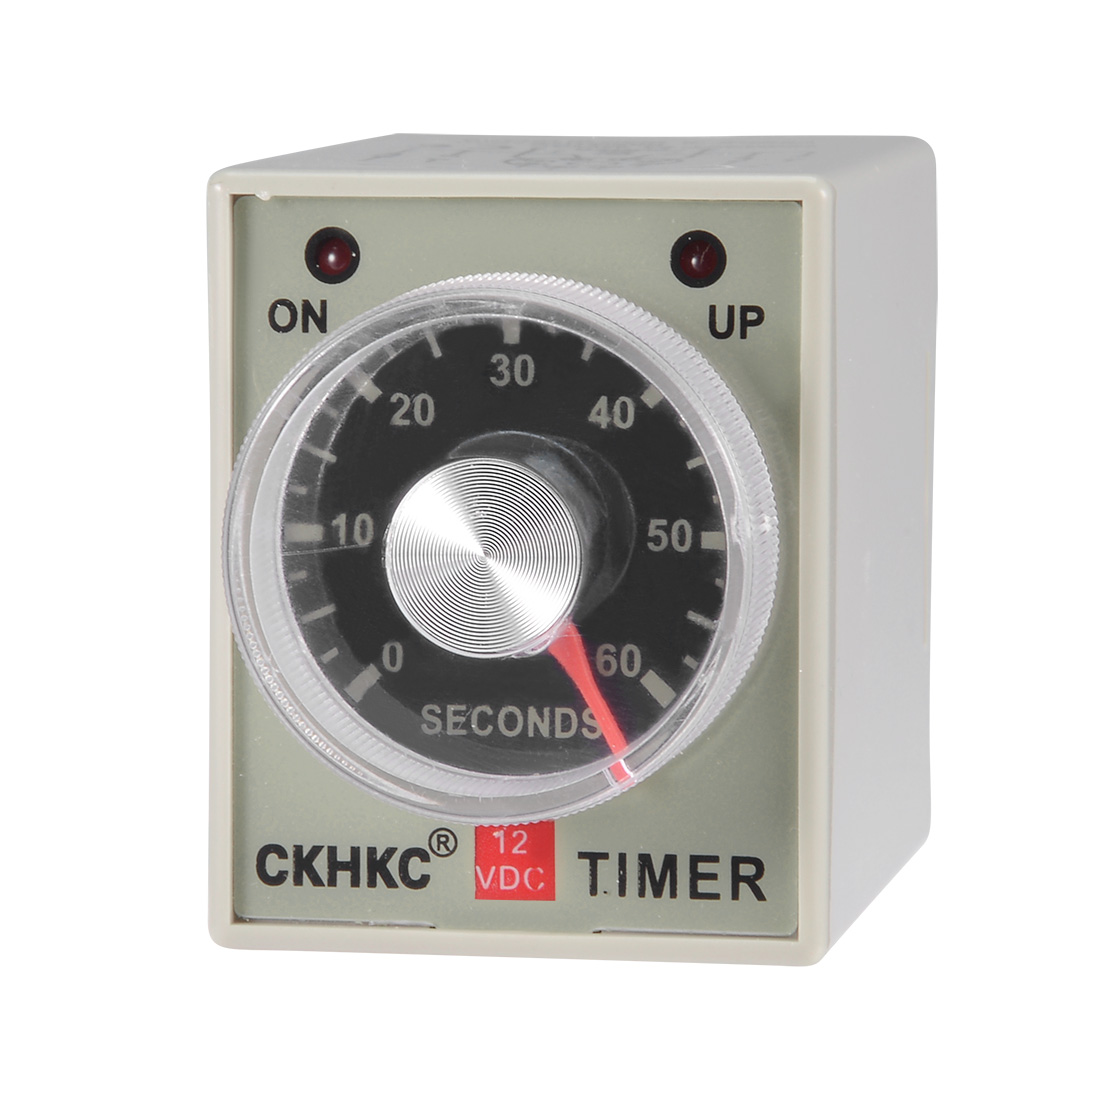 DC12V 60S 8 Terminals Range Adjustable Delay Timer Time Relay AH3-3